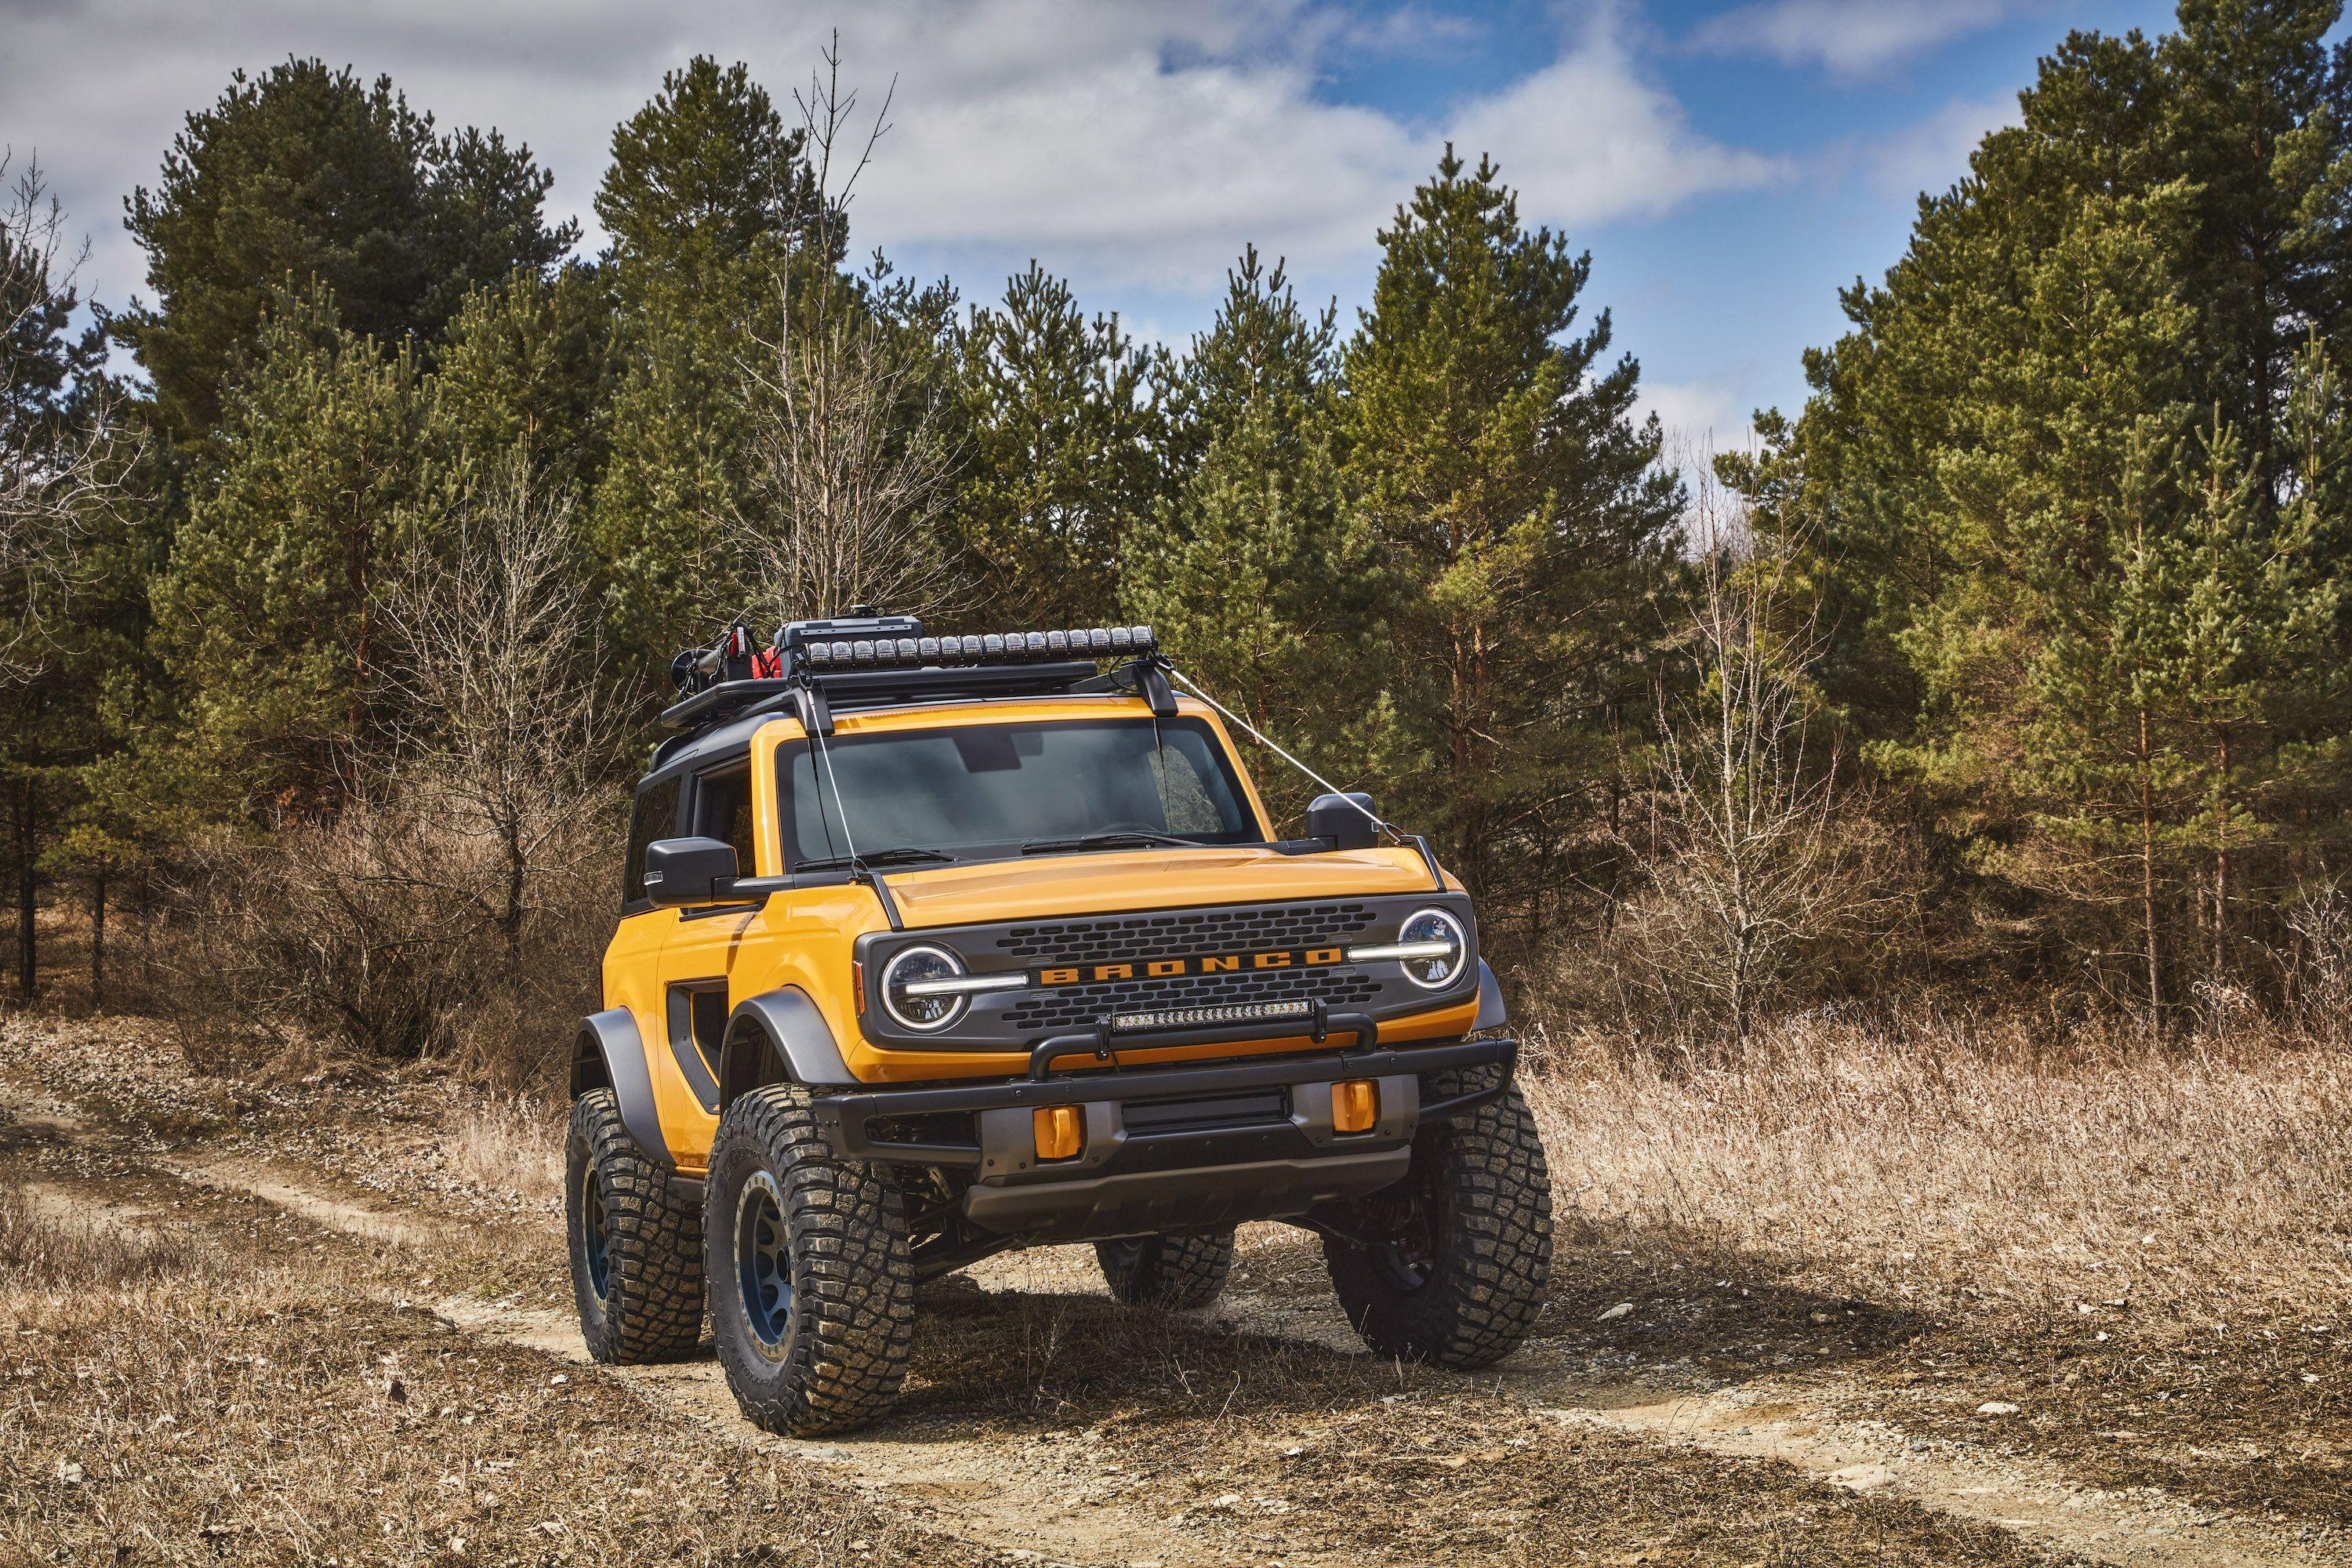 """<p>The <a href=""""https://www.roadandtrack.com/new-cars/future-cars/a33296962/2021-ford-bronco-price-specs-release-date-hp/"""" rel=""""nofollow noopener"""" target=""""_blank"""" data-ylk=""""slk:new Bronco"""" class=""""link rapid-noclick-resp"""">new Bronco</a> is arguably Ford's most important vehicle in decades. Aimed directly at the Jeep Wrangler's segment, it promises to be a fun, engaging off-roader with plenty of retro charm. </p><p>Ford released dozens of photos for us to get a look at the new Bronco close-up as it edges ever closer to production. Let's dive in. </p>"""